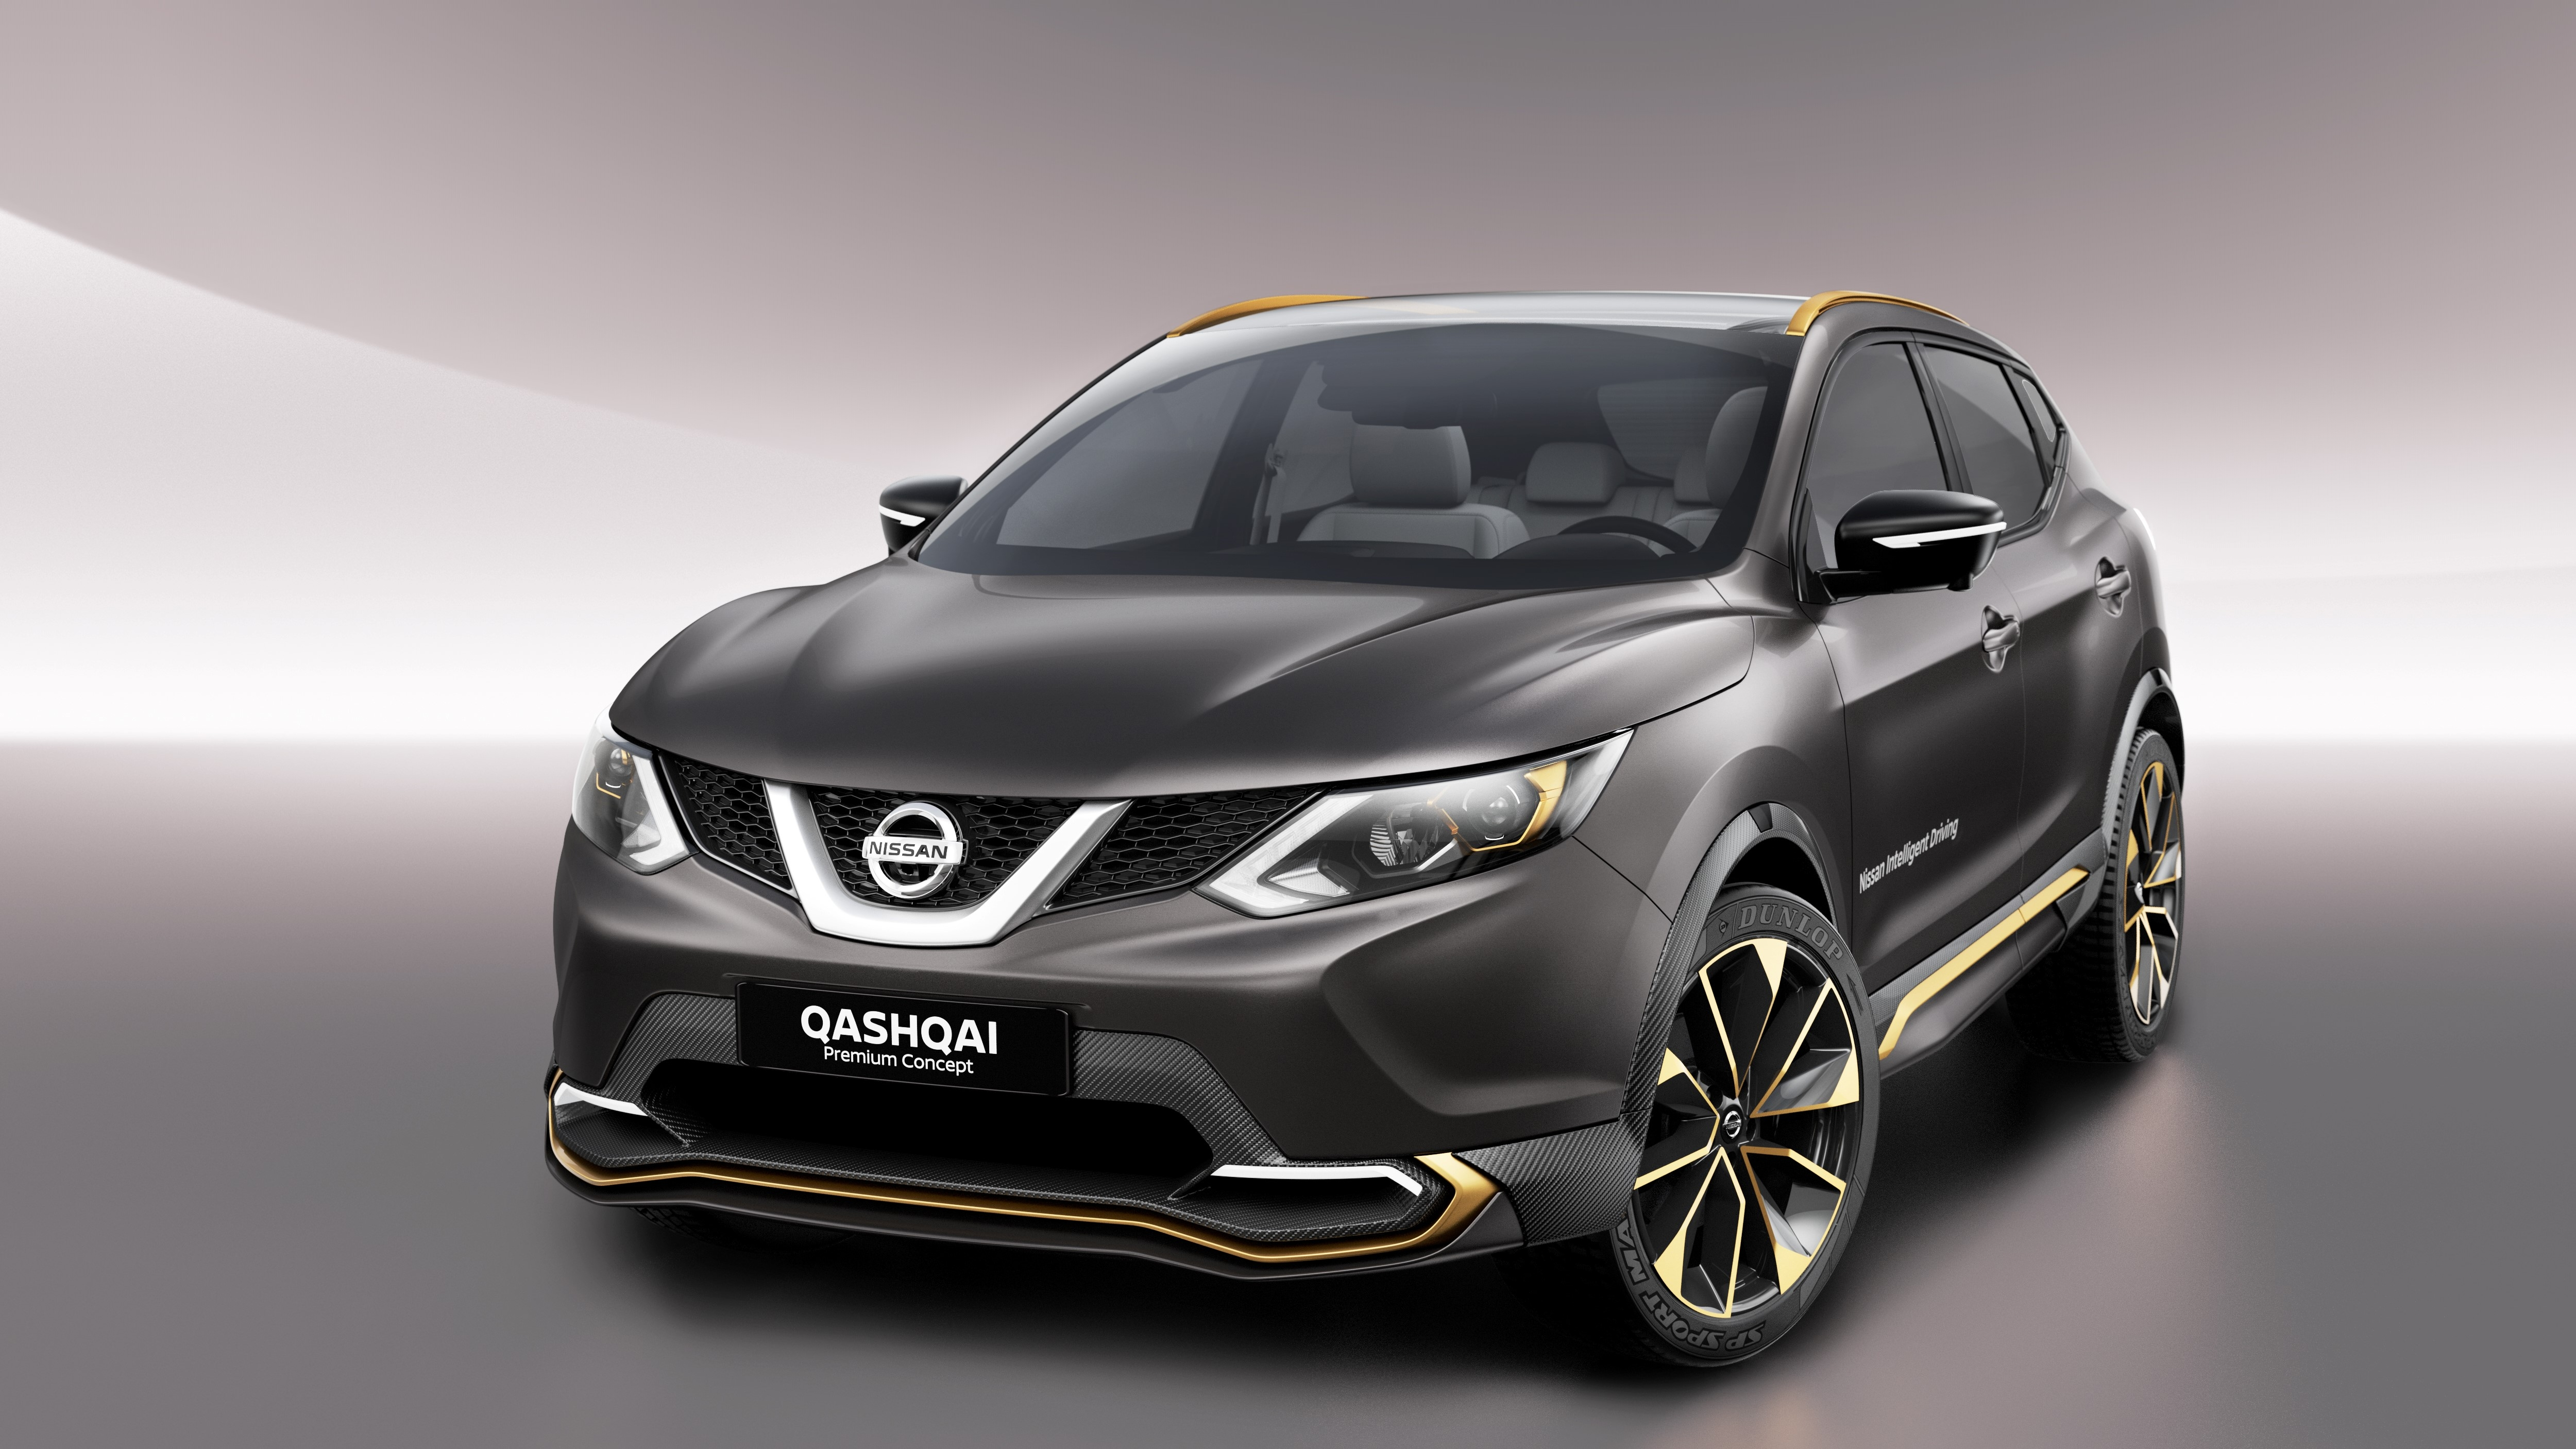 nissan le qashqai semi autonome arrive en 2017. Black Bedroom Furniture Sets. Home Design Ideas